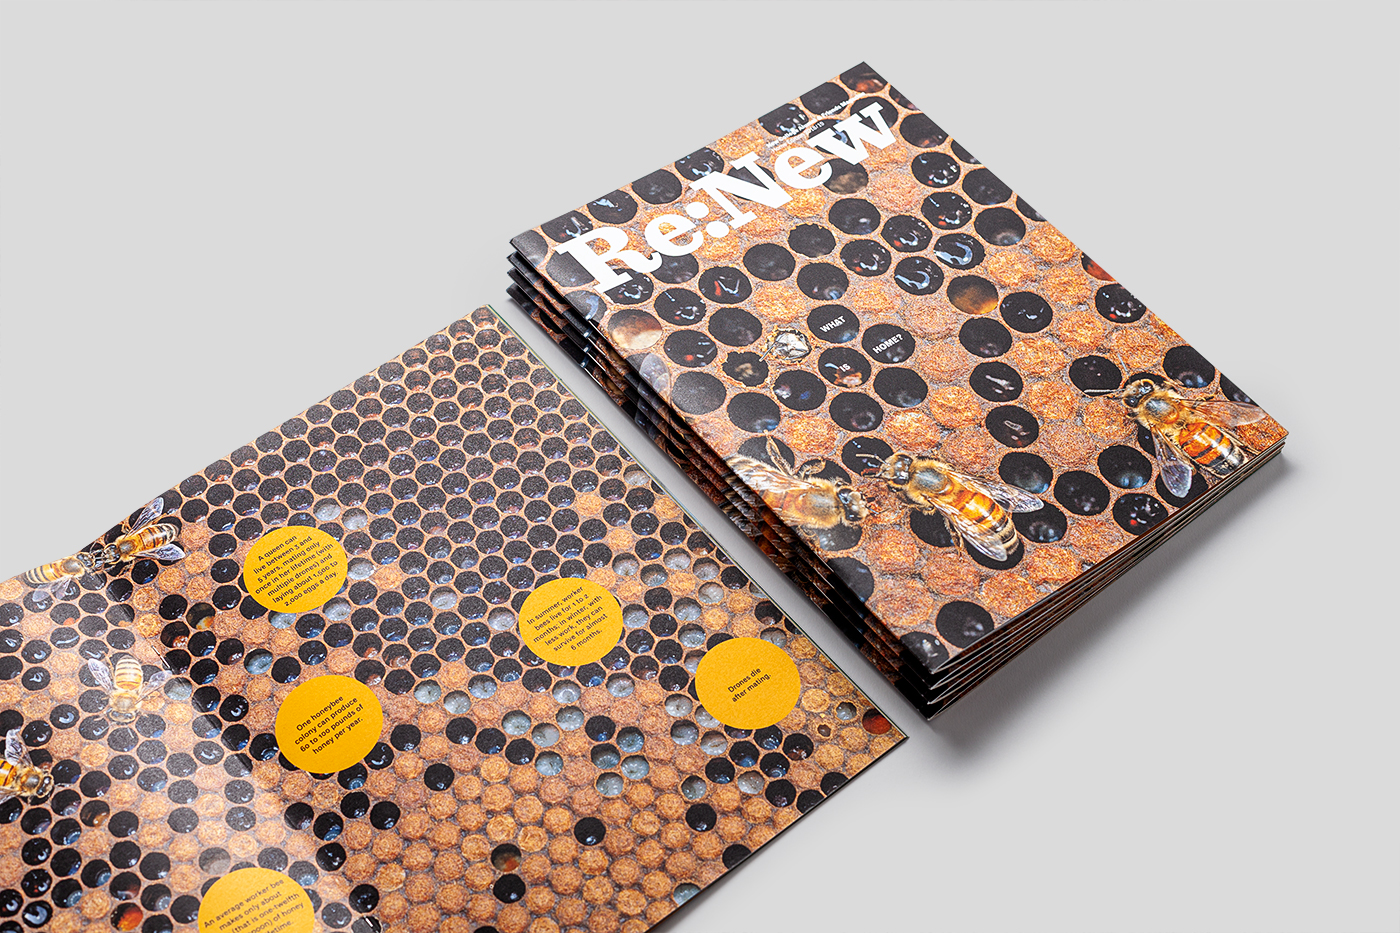 Magazine cover and interior pages showing images of bee hive and bees.